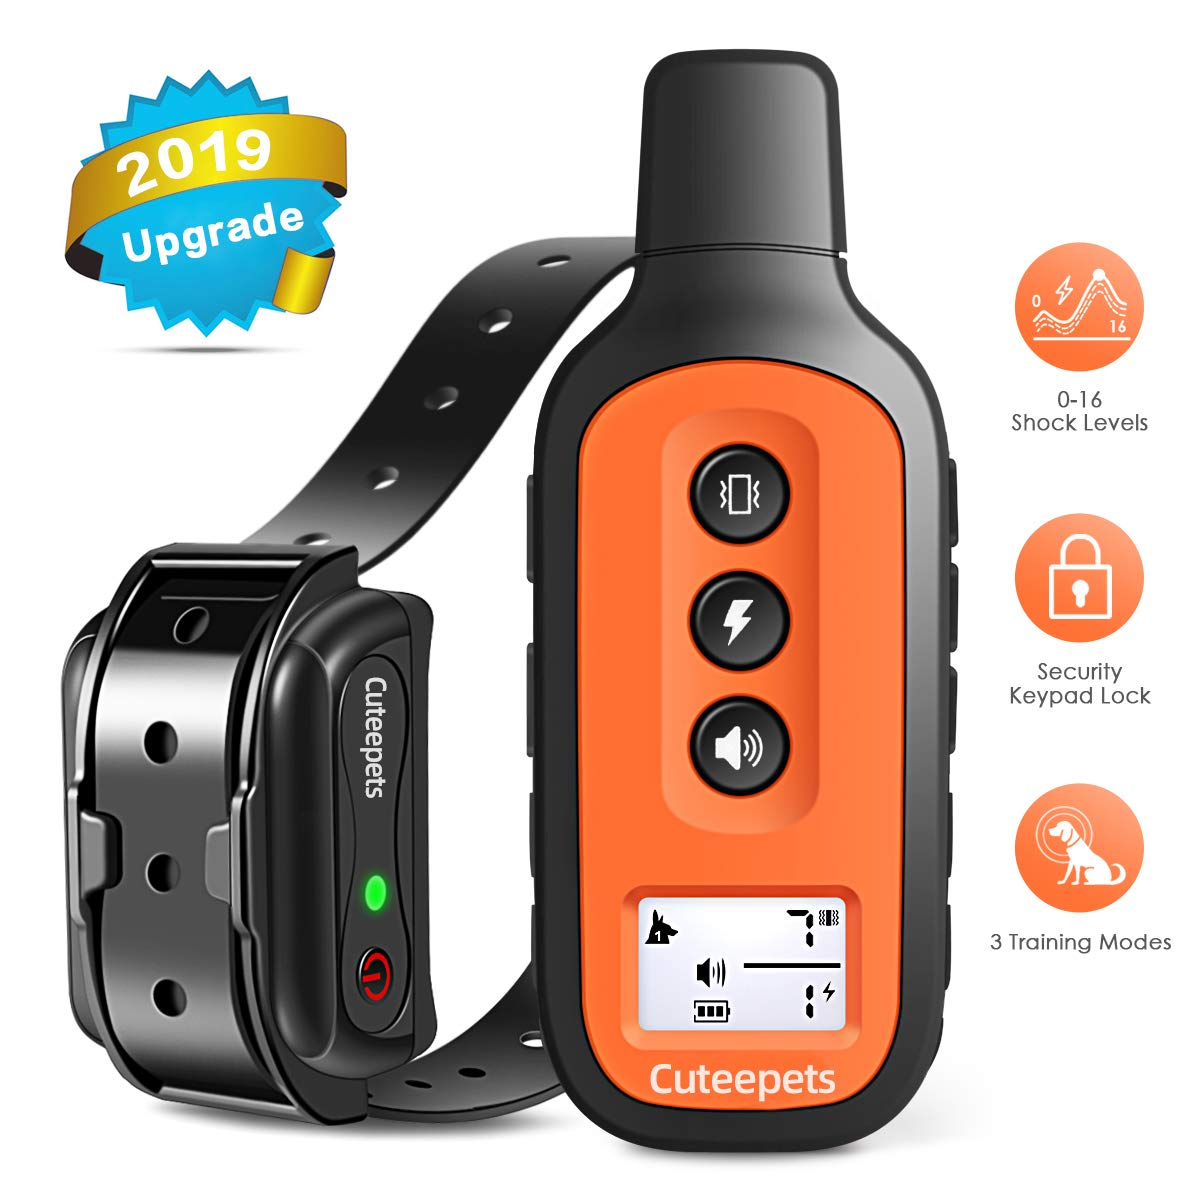 Dog Training Collar-2019 Newest Shock Collar for Dogs with 3 Training Modes, Beep, Vibration and Shock, UP to 1600FT Remote Range, Rechargeable & IPX7 WaterProof, 0-16 Shock Levels Dog Training Set by Cuteepets